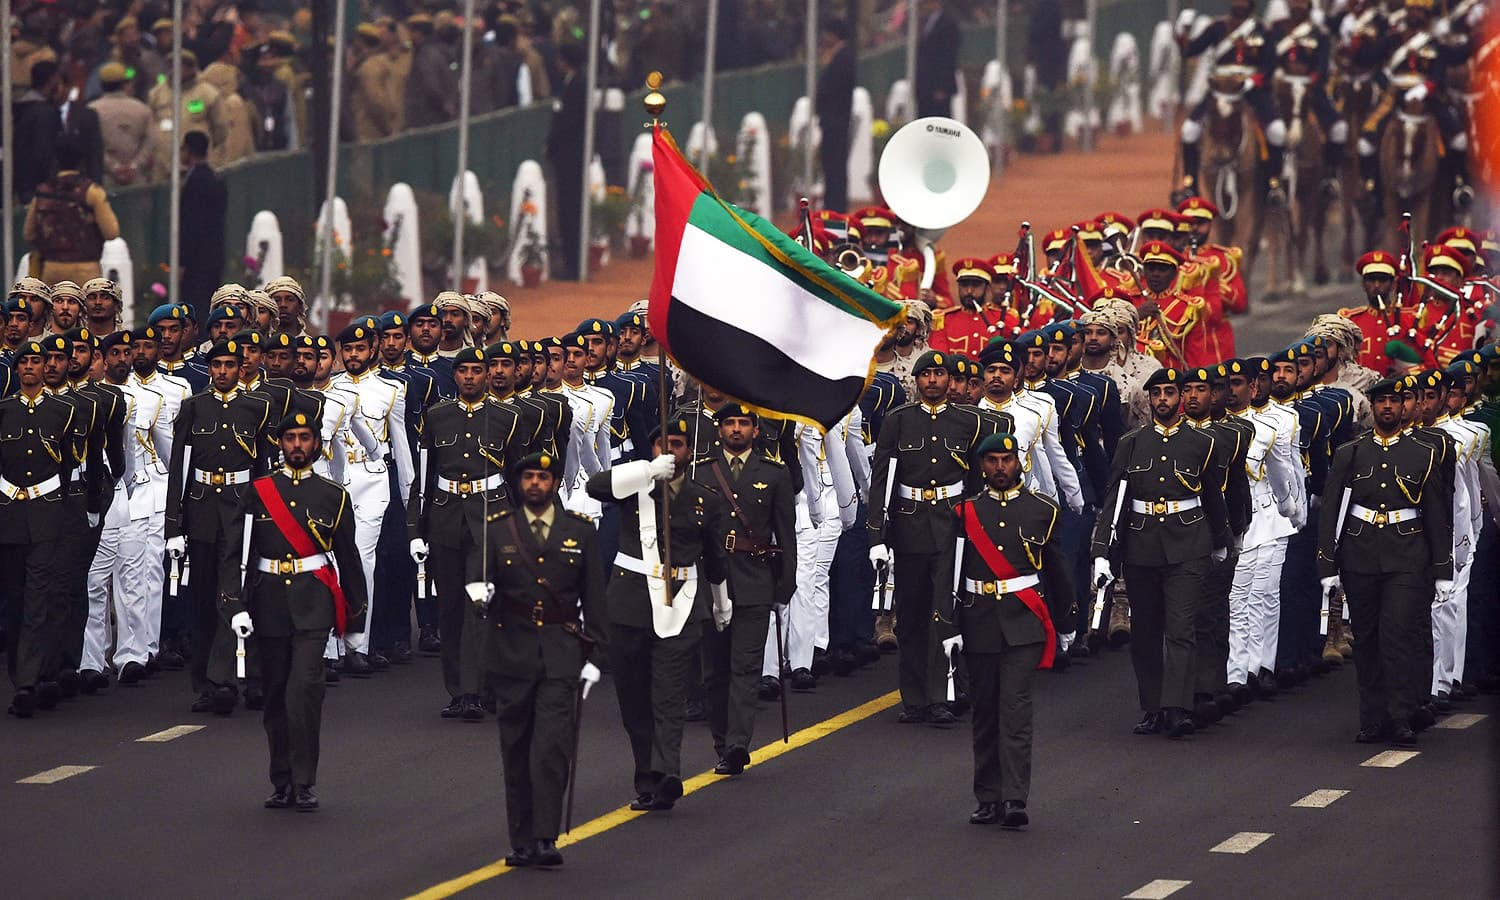 A contingent from the United Arab Emirates marches past in India's Republic Day Parade at Rajpath in New Delhi.— AFP